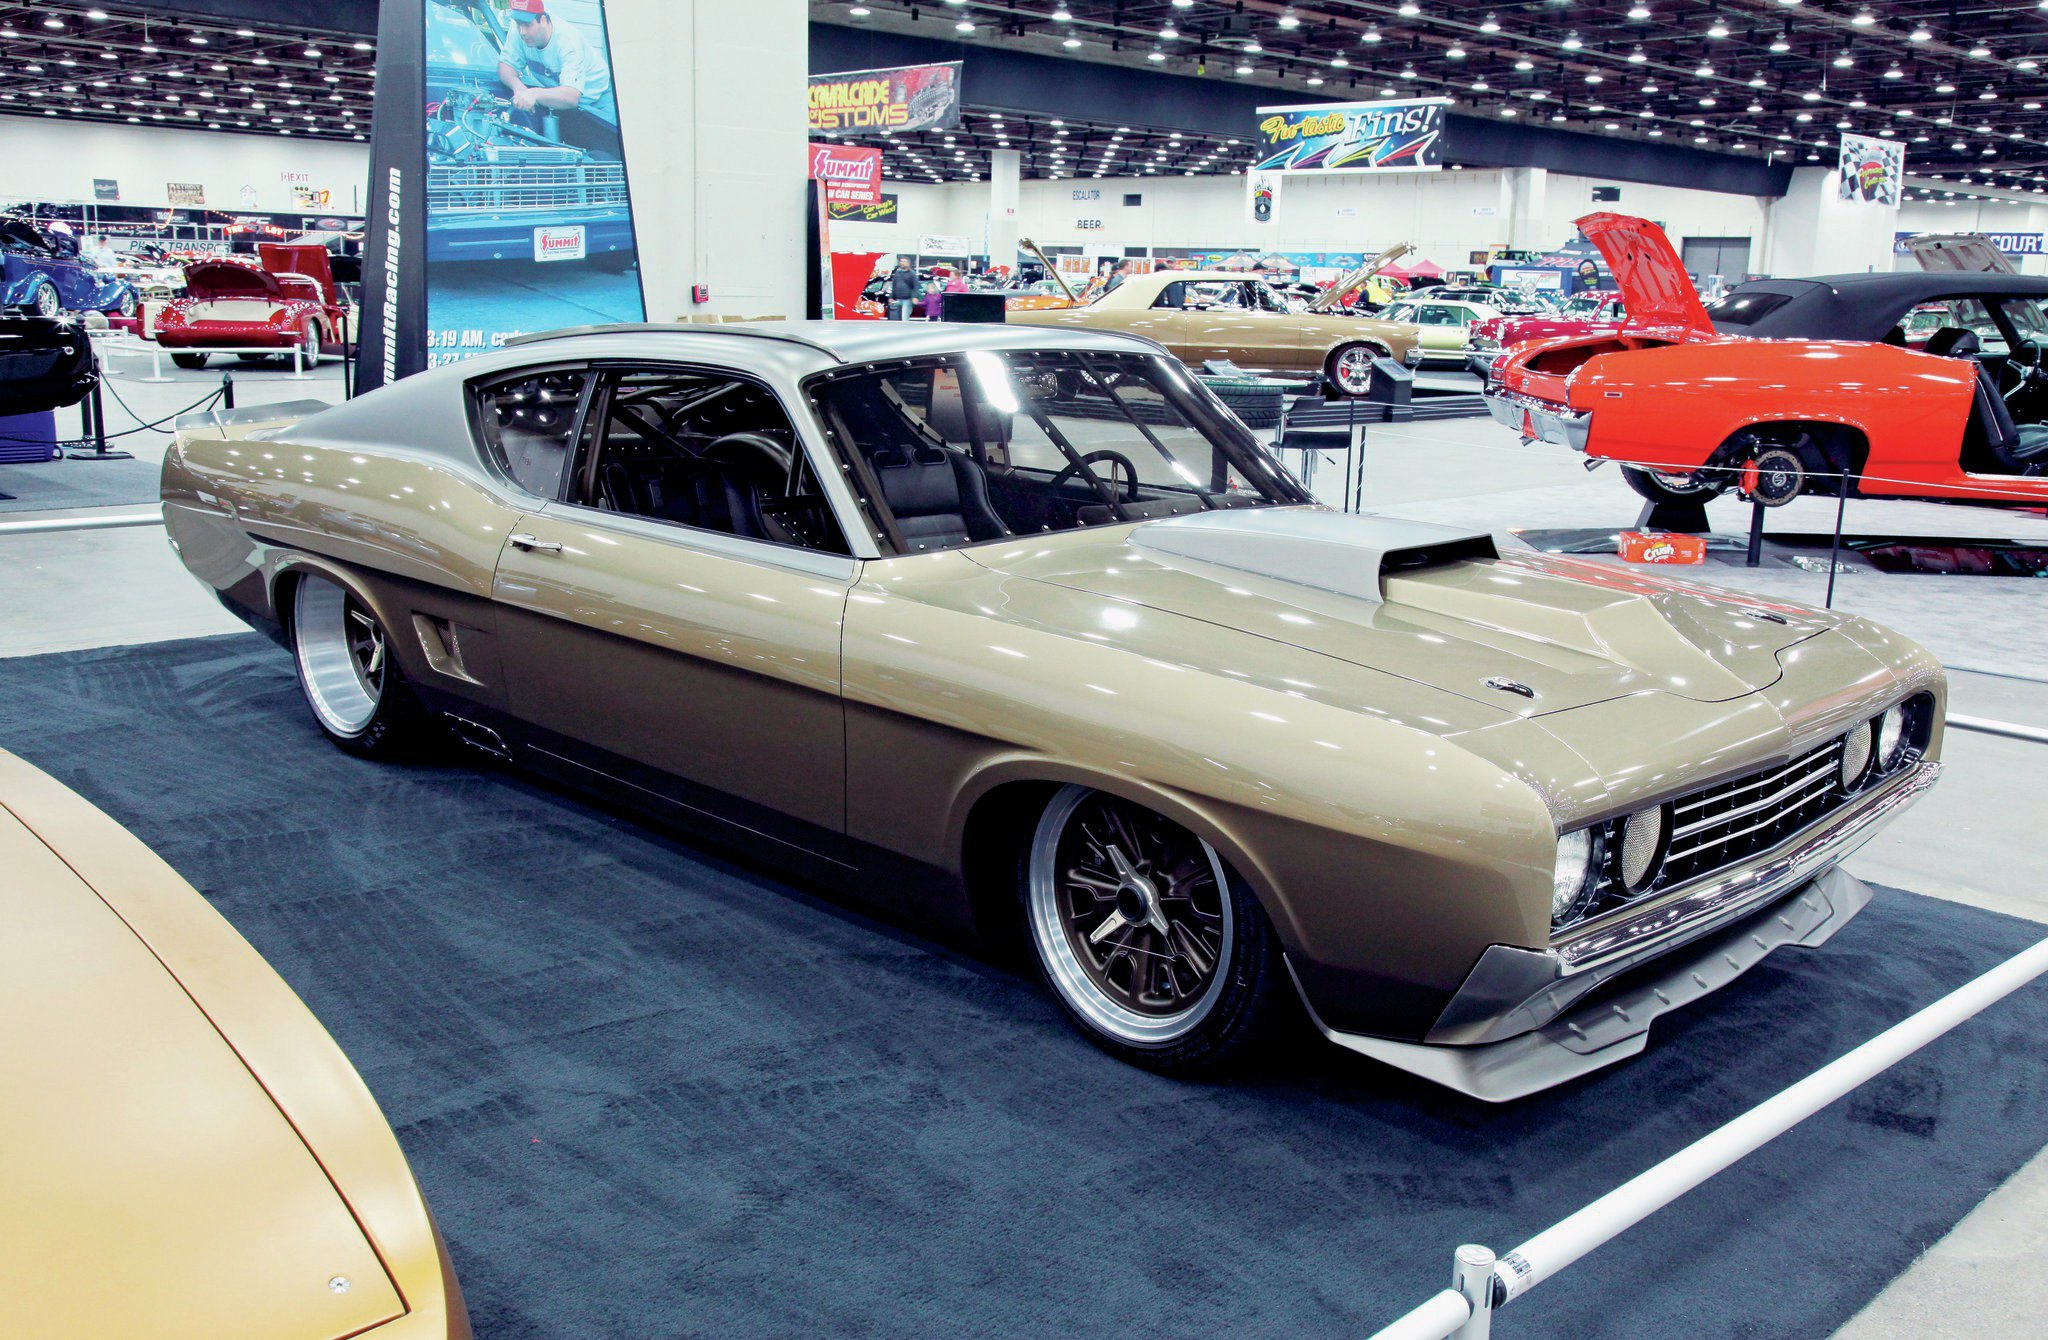 The 1969 Ford Torino Talledega GT Special Troy built for George Poteet has got an injected Ford Boss 429 under the hood, capable of 750 hp. The car sits on a beefy Art Morrison chassis and runs 14-inch disc brakes on each corner.